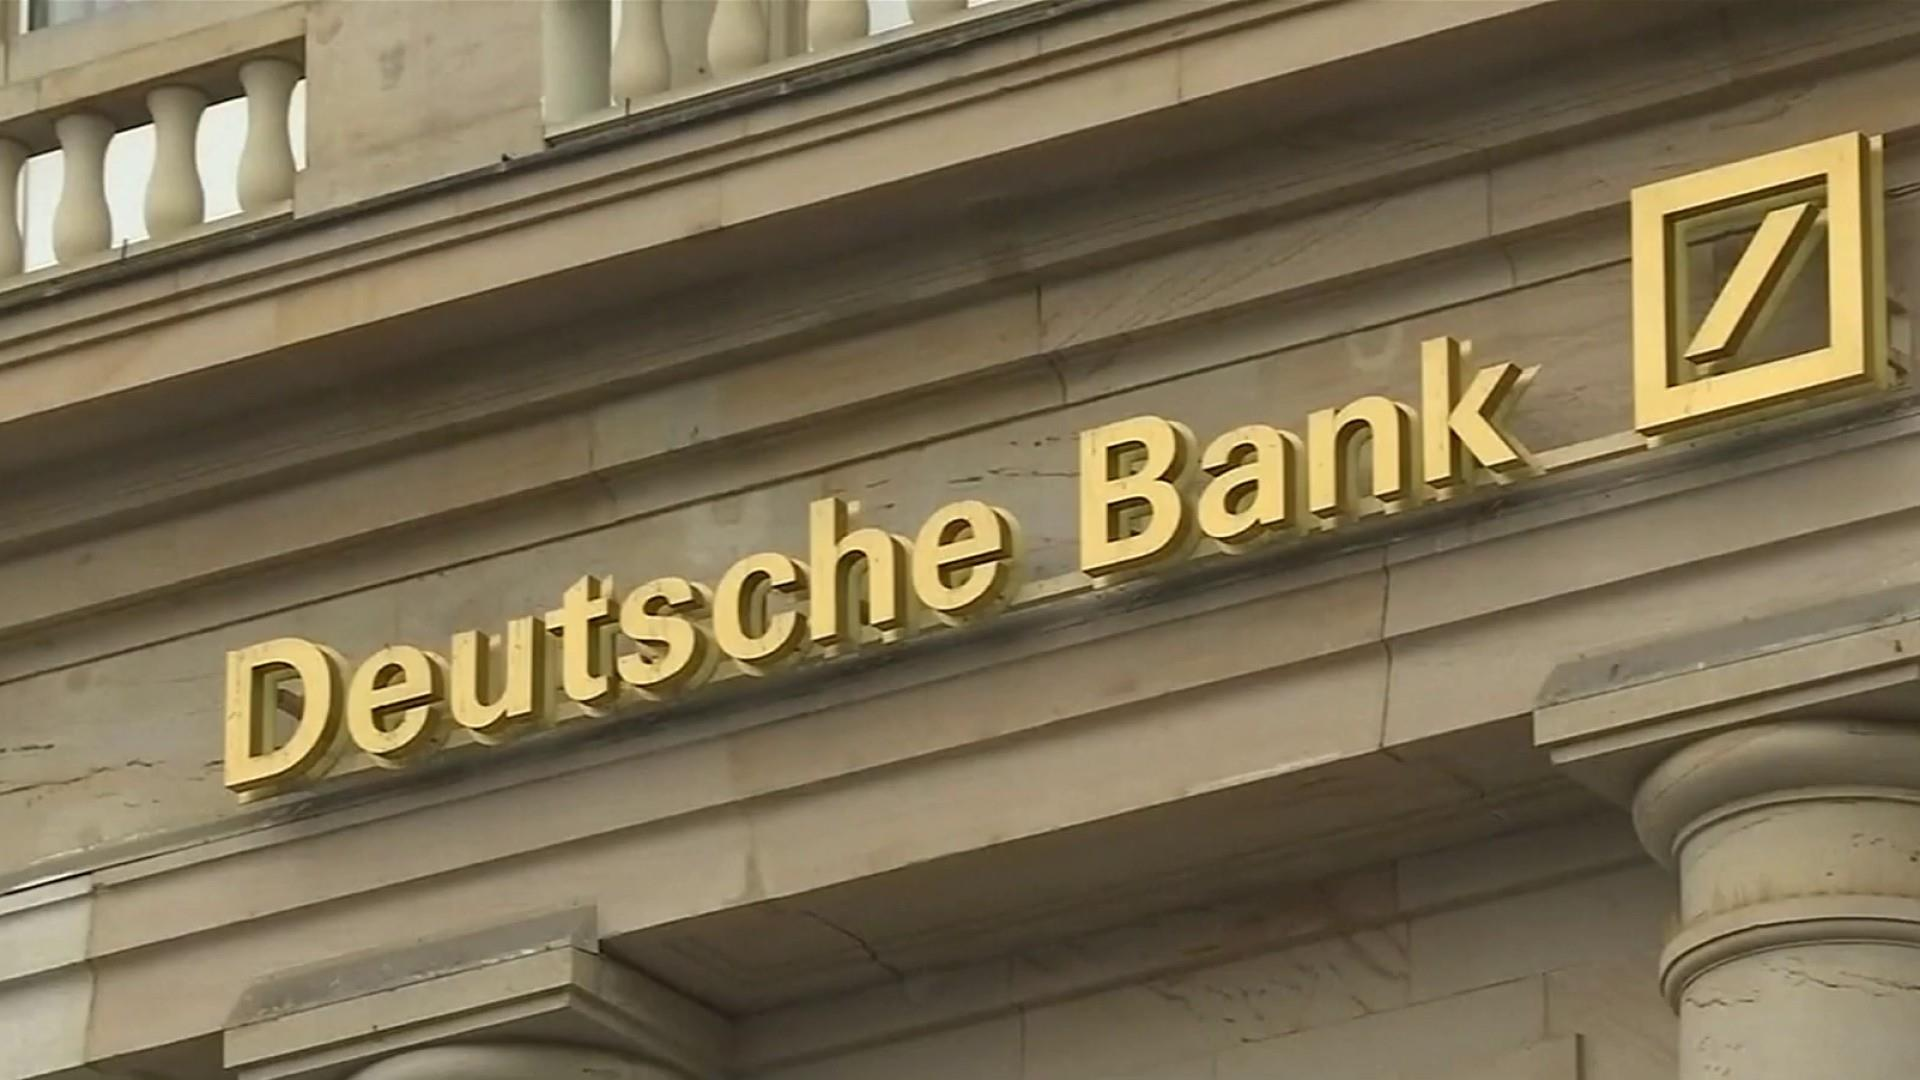 Federal financial crimes investigators descend on Deutsche Bank